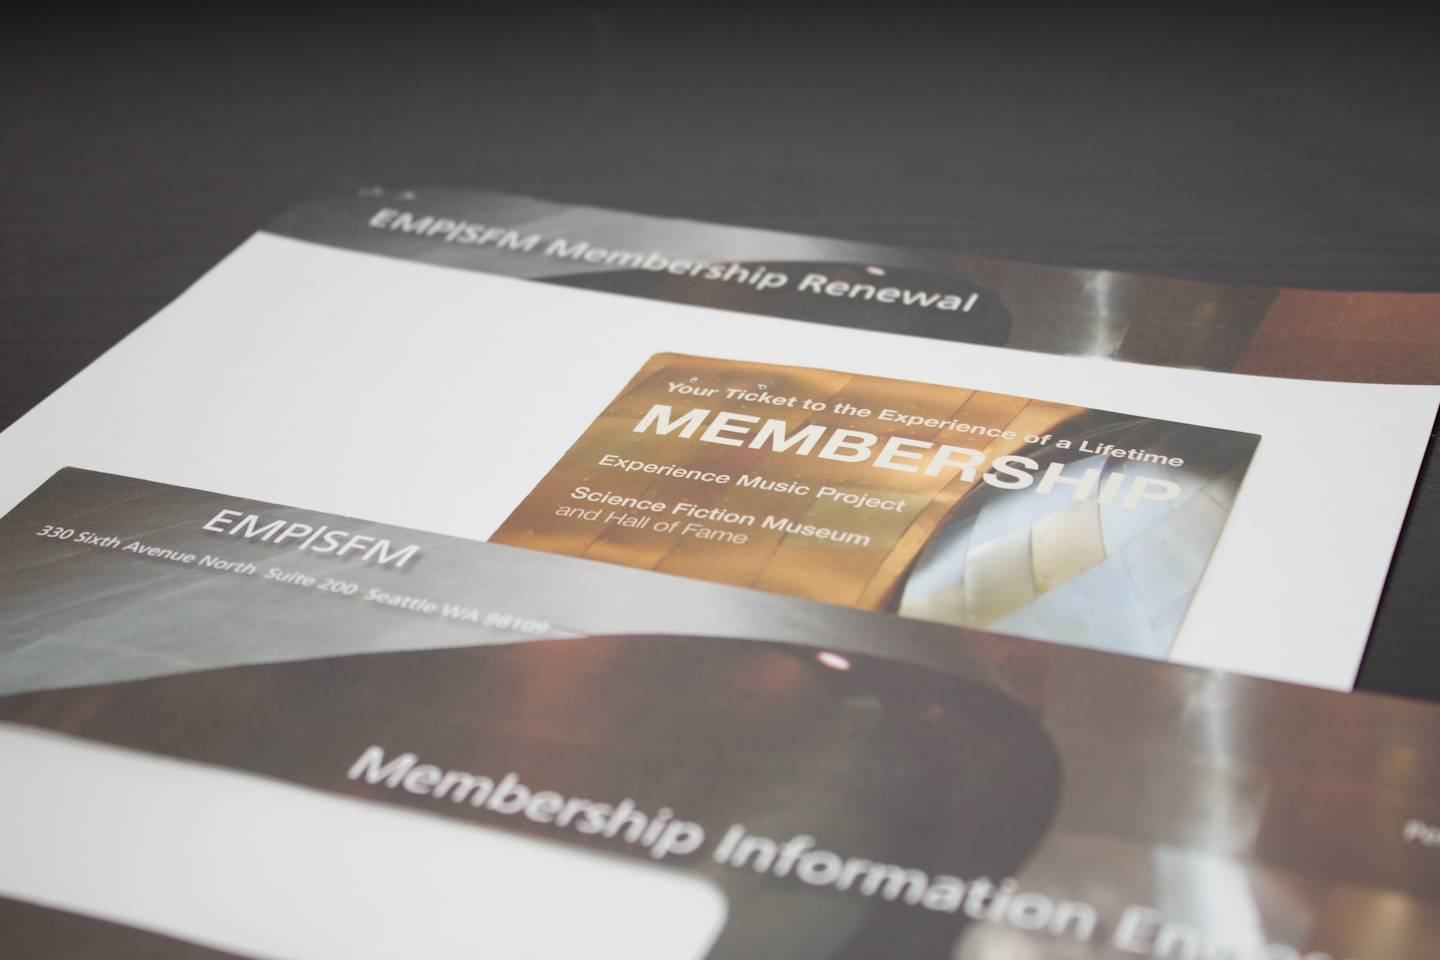 Updated membership materials for the newly merged Experience Music Project and Science Fiction Museum.